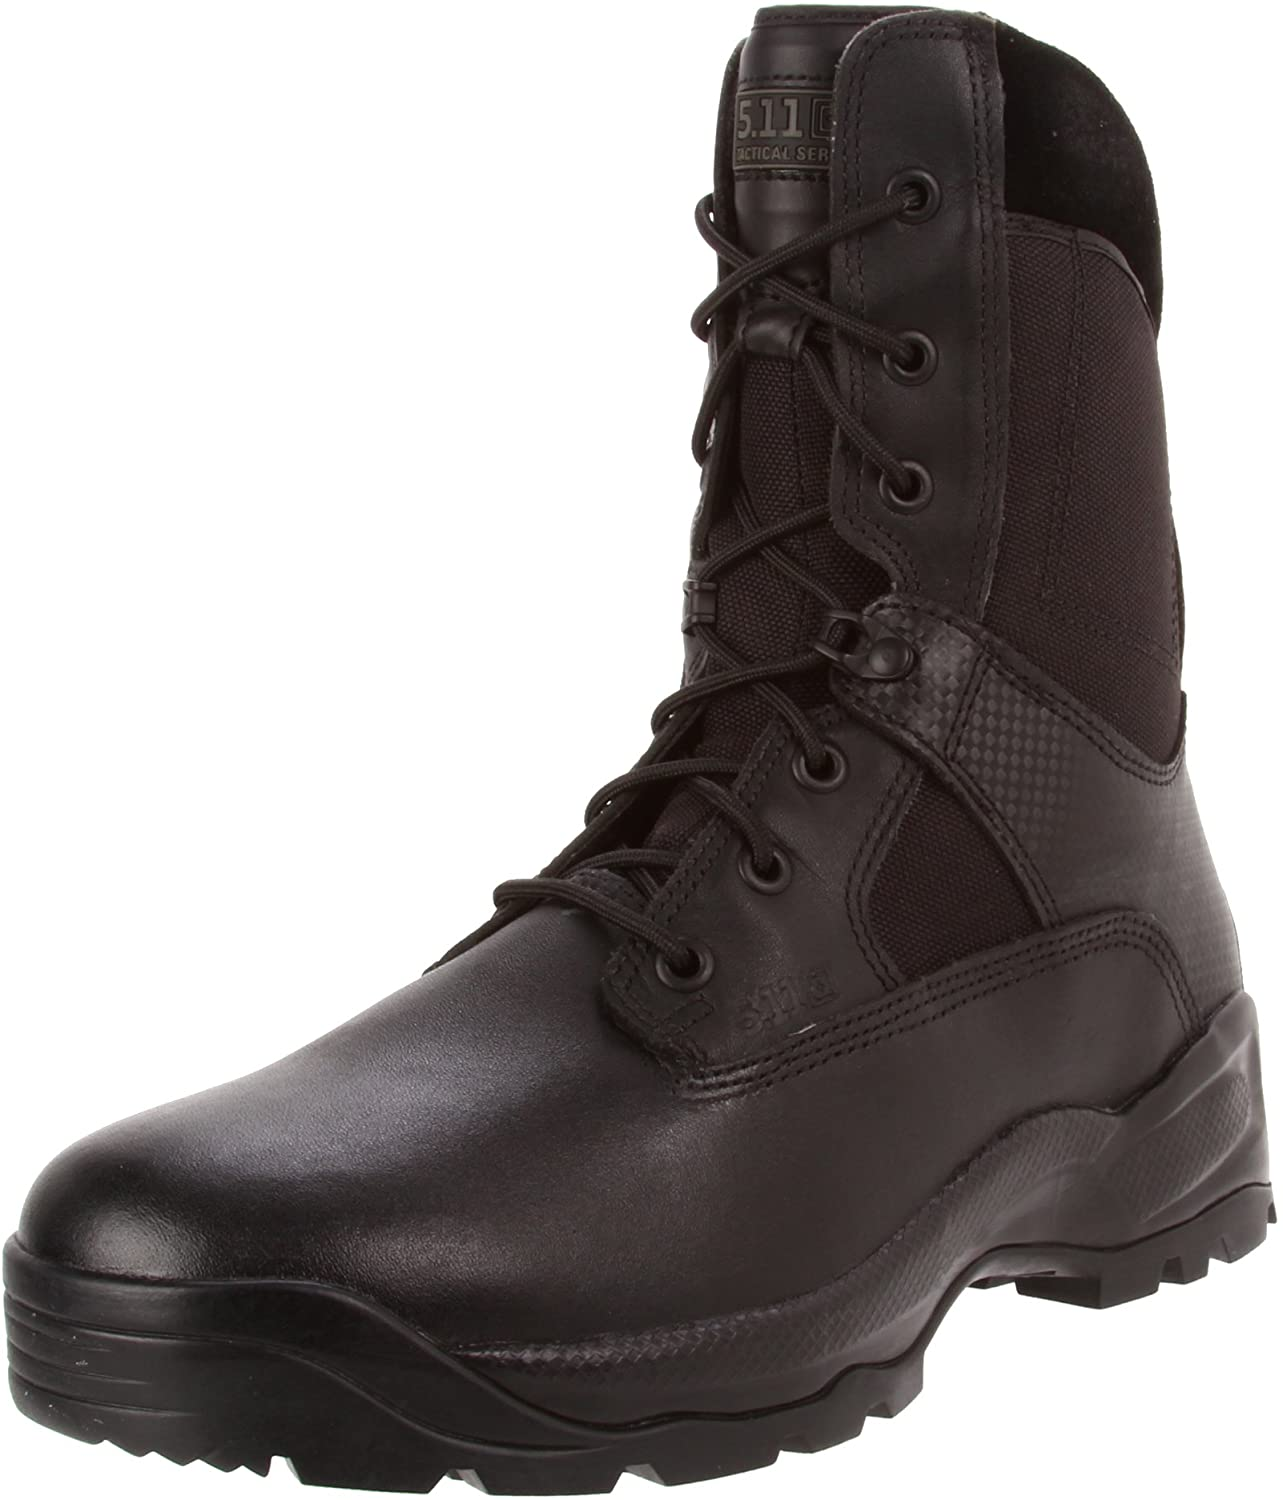 5.11 Tactical ATAC Coyote Boots can be a great choice for paramedics.